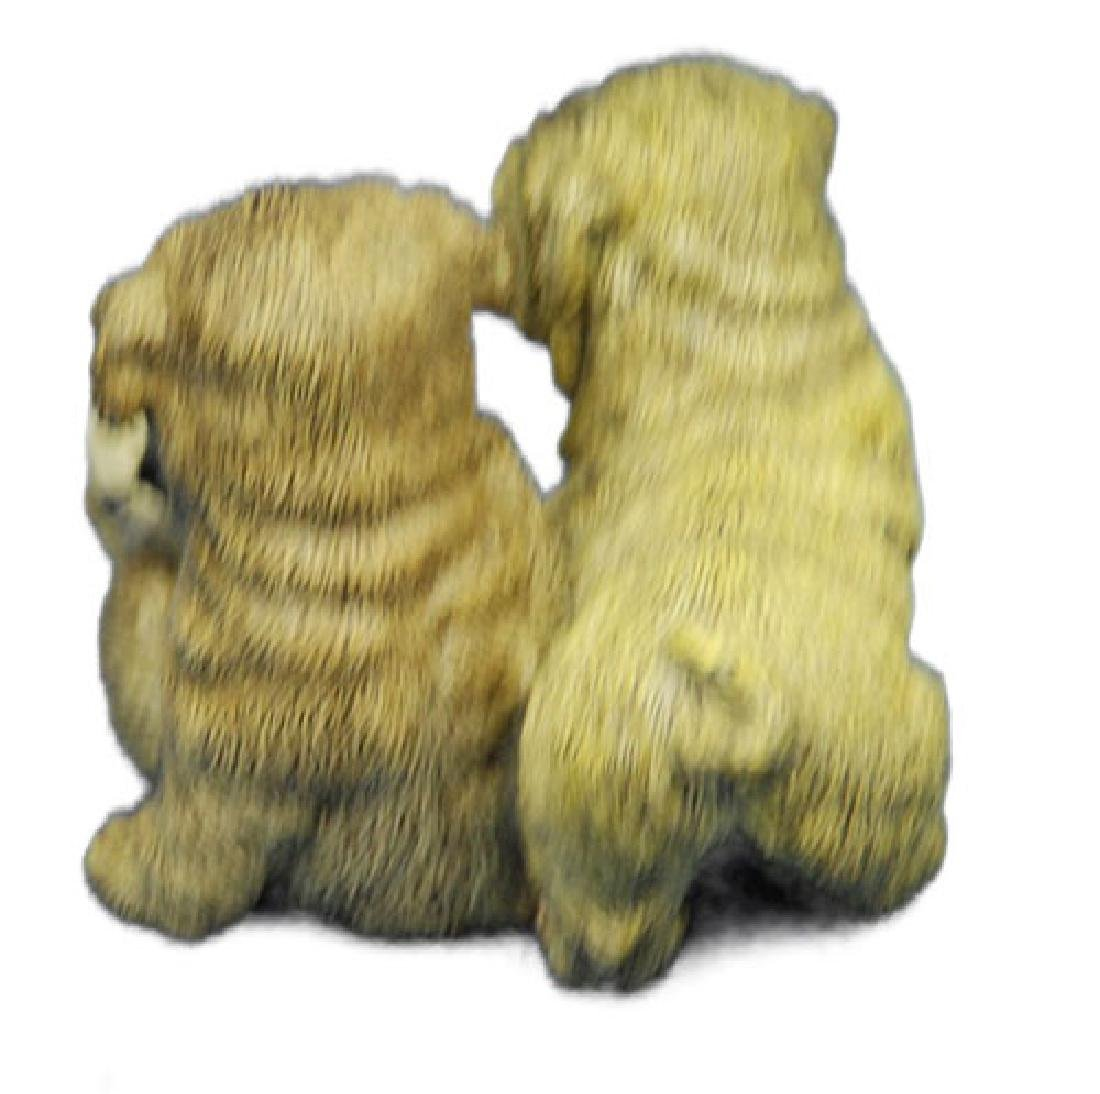 Two Sitting Puppies Dogs Bronze Sculpture - 3